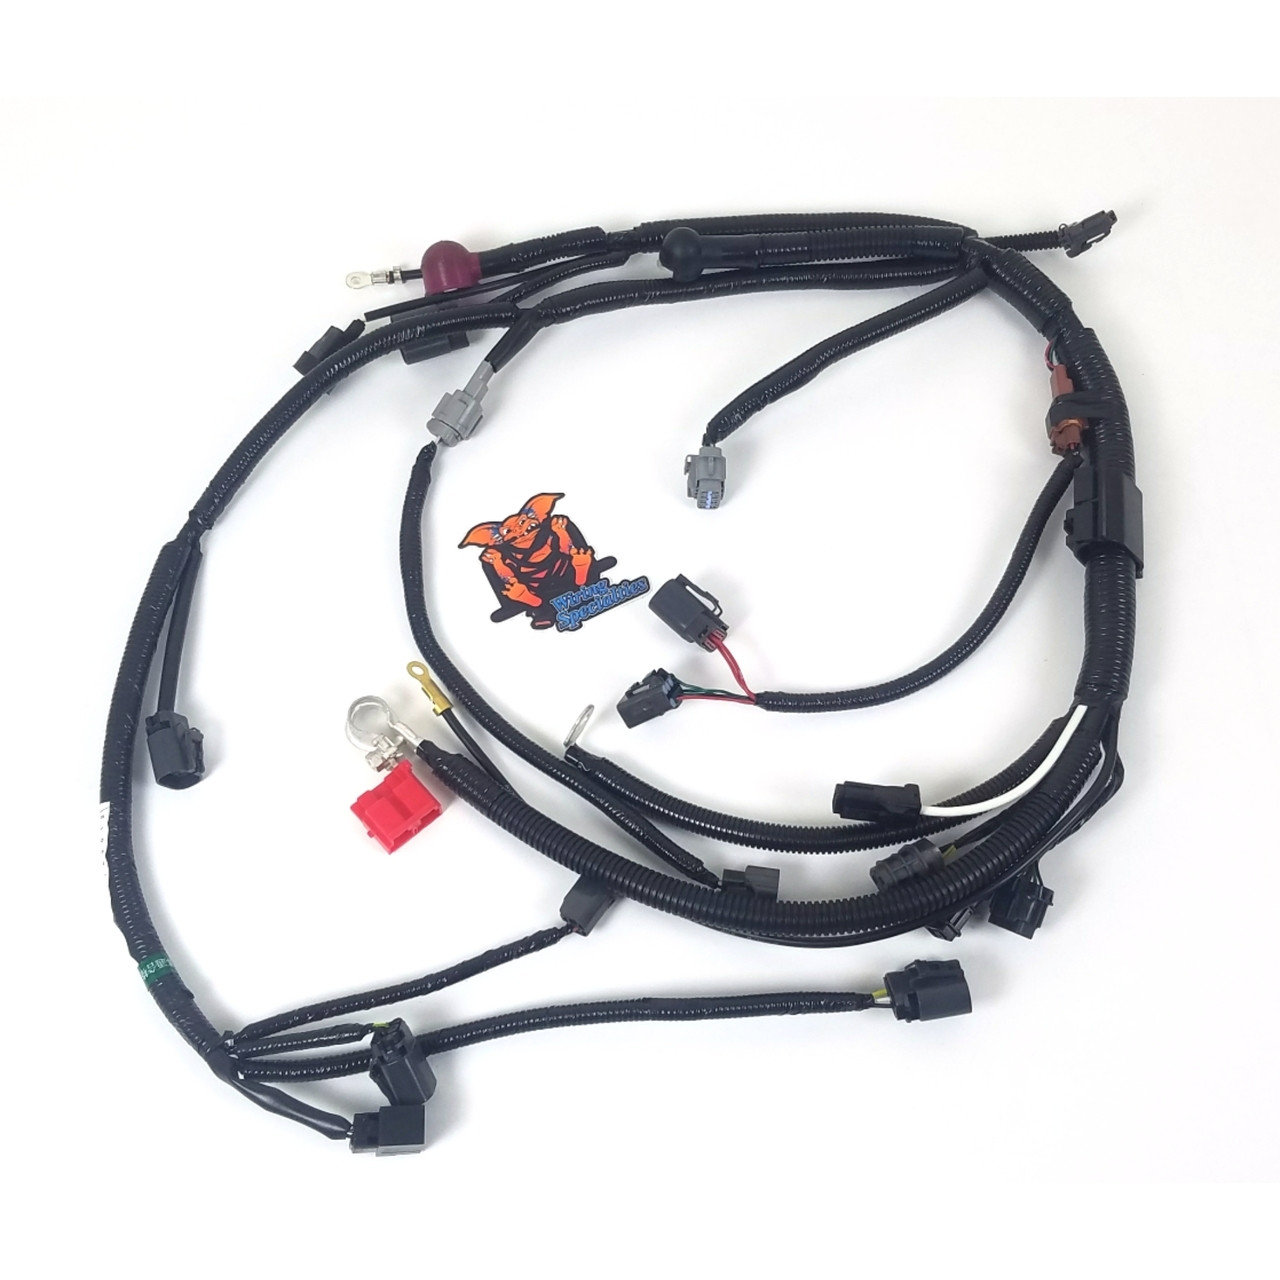 hight resolution of wiring specialties s14 ka24de lower harness for 240sx s14 ka24de wiring harness diagram ka24de wiring harness